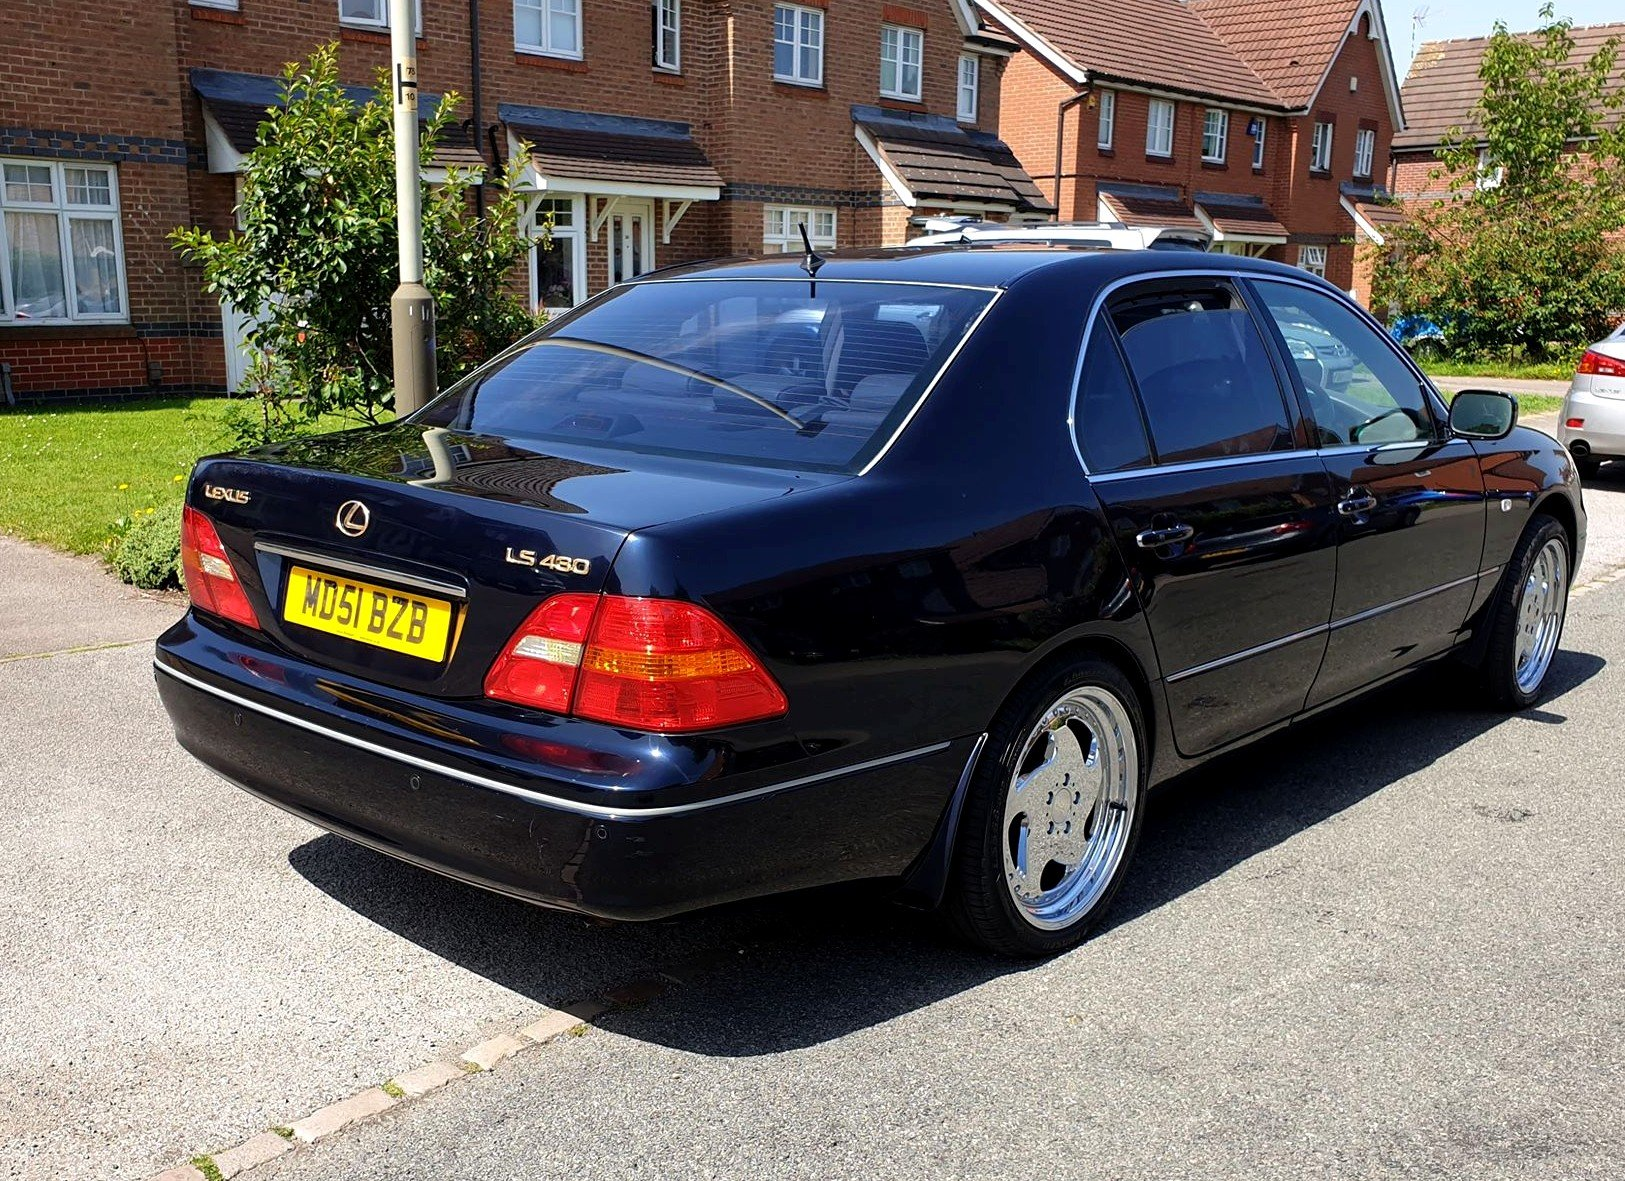 2002 Lexus Ls 430 president top spec For Sale (picture 4 of 6)